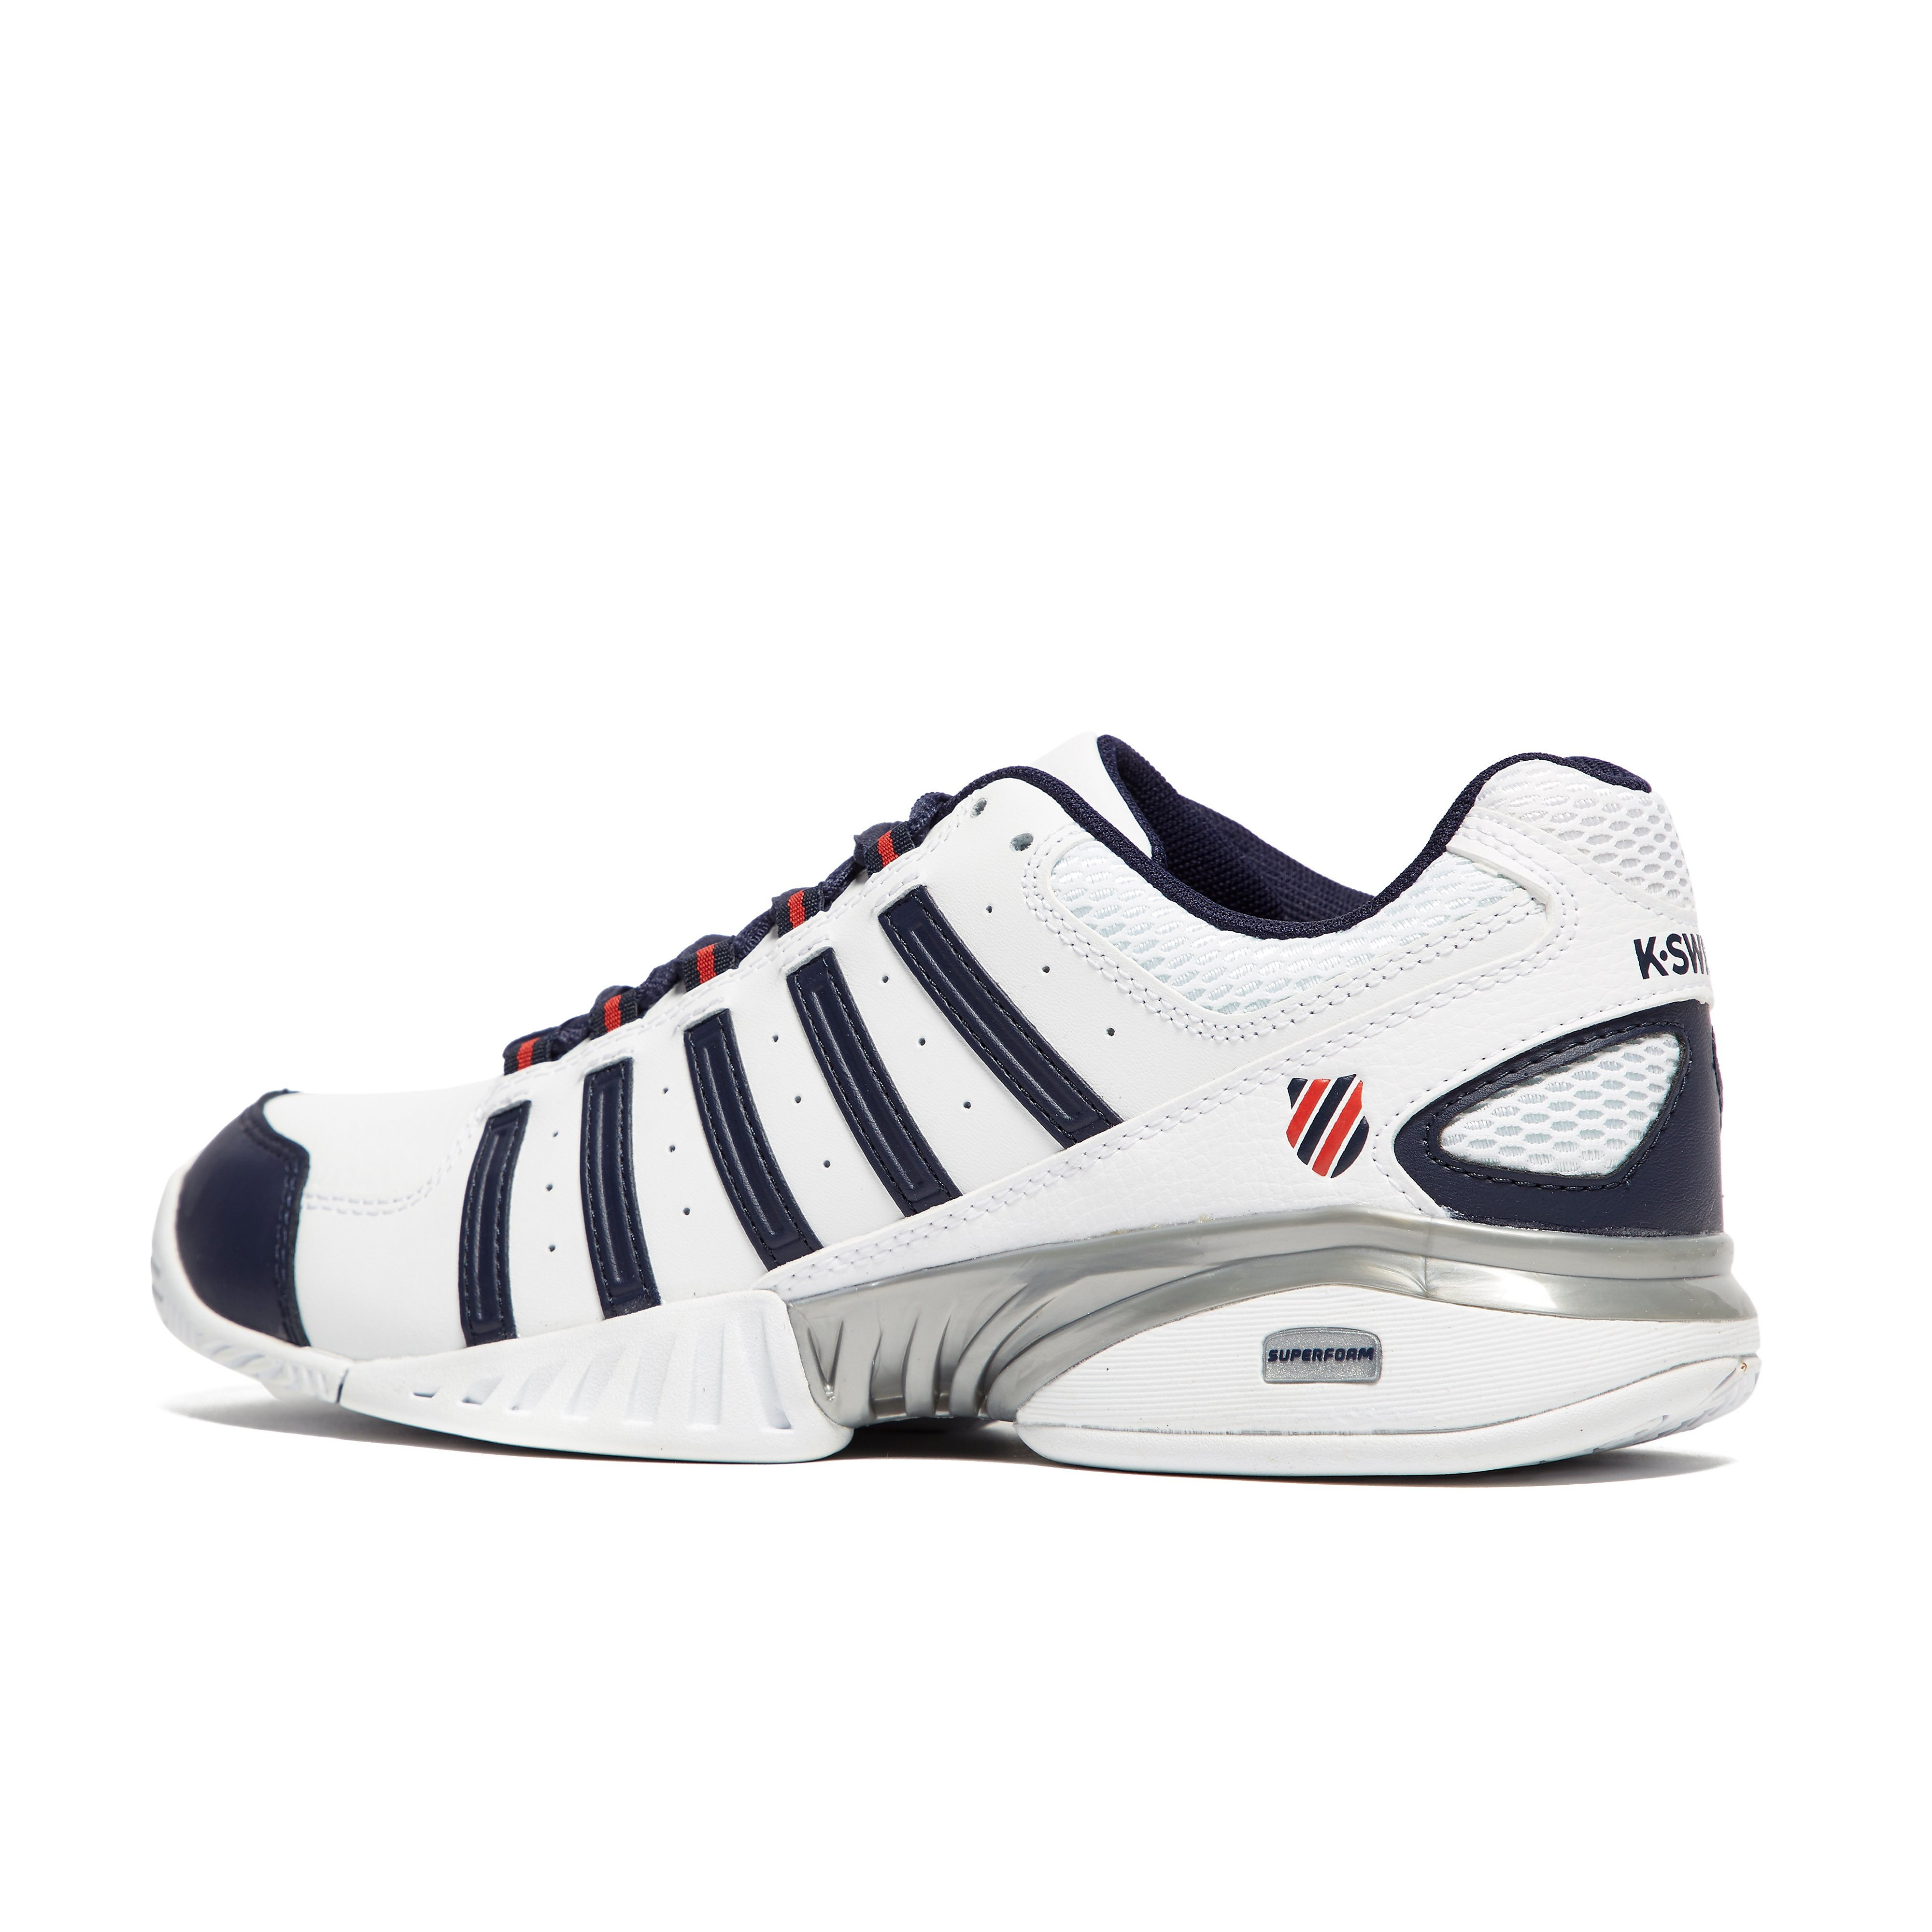 K-Swiss Receiver III All Court Men's Tennis Shoes